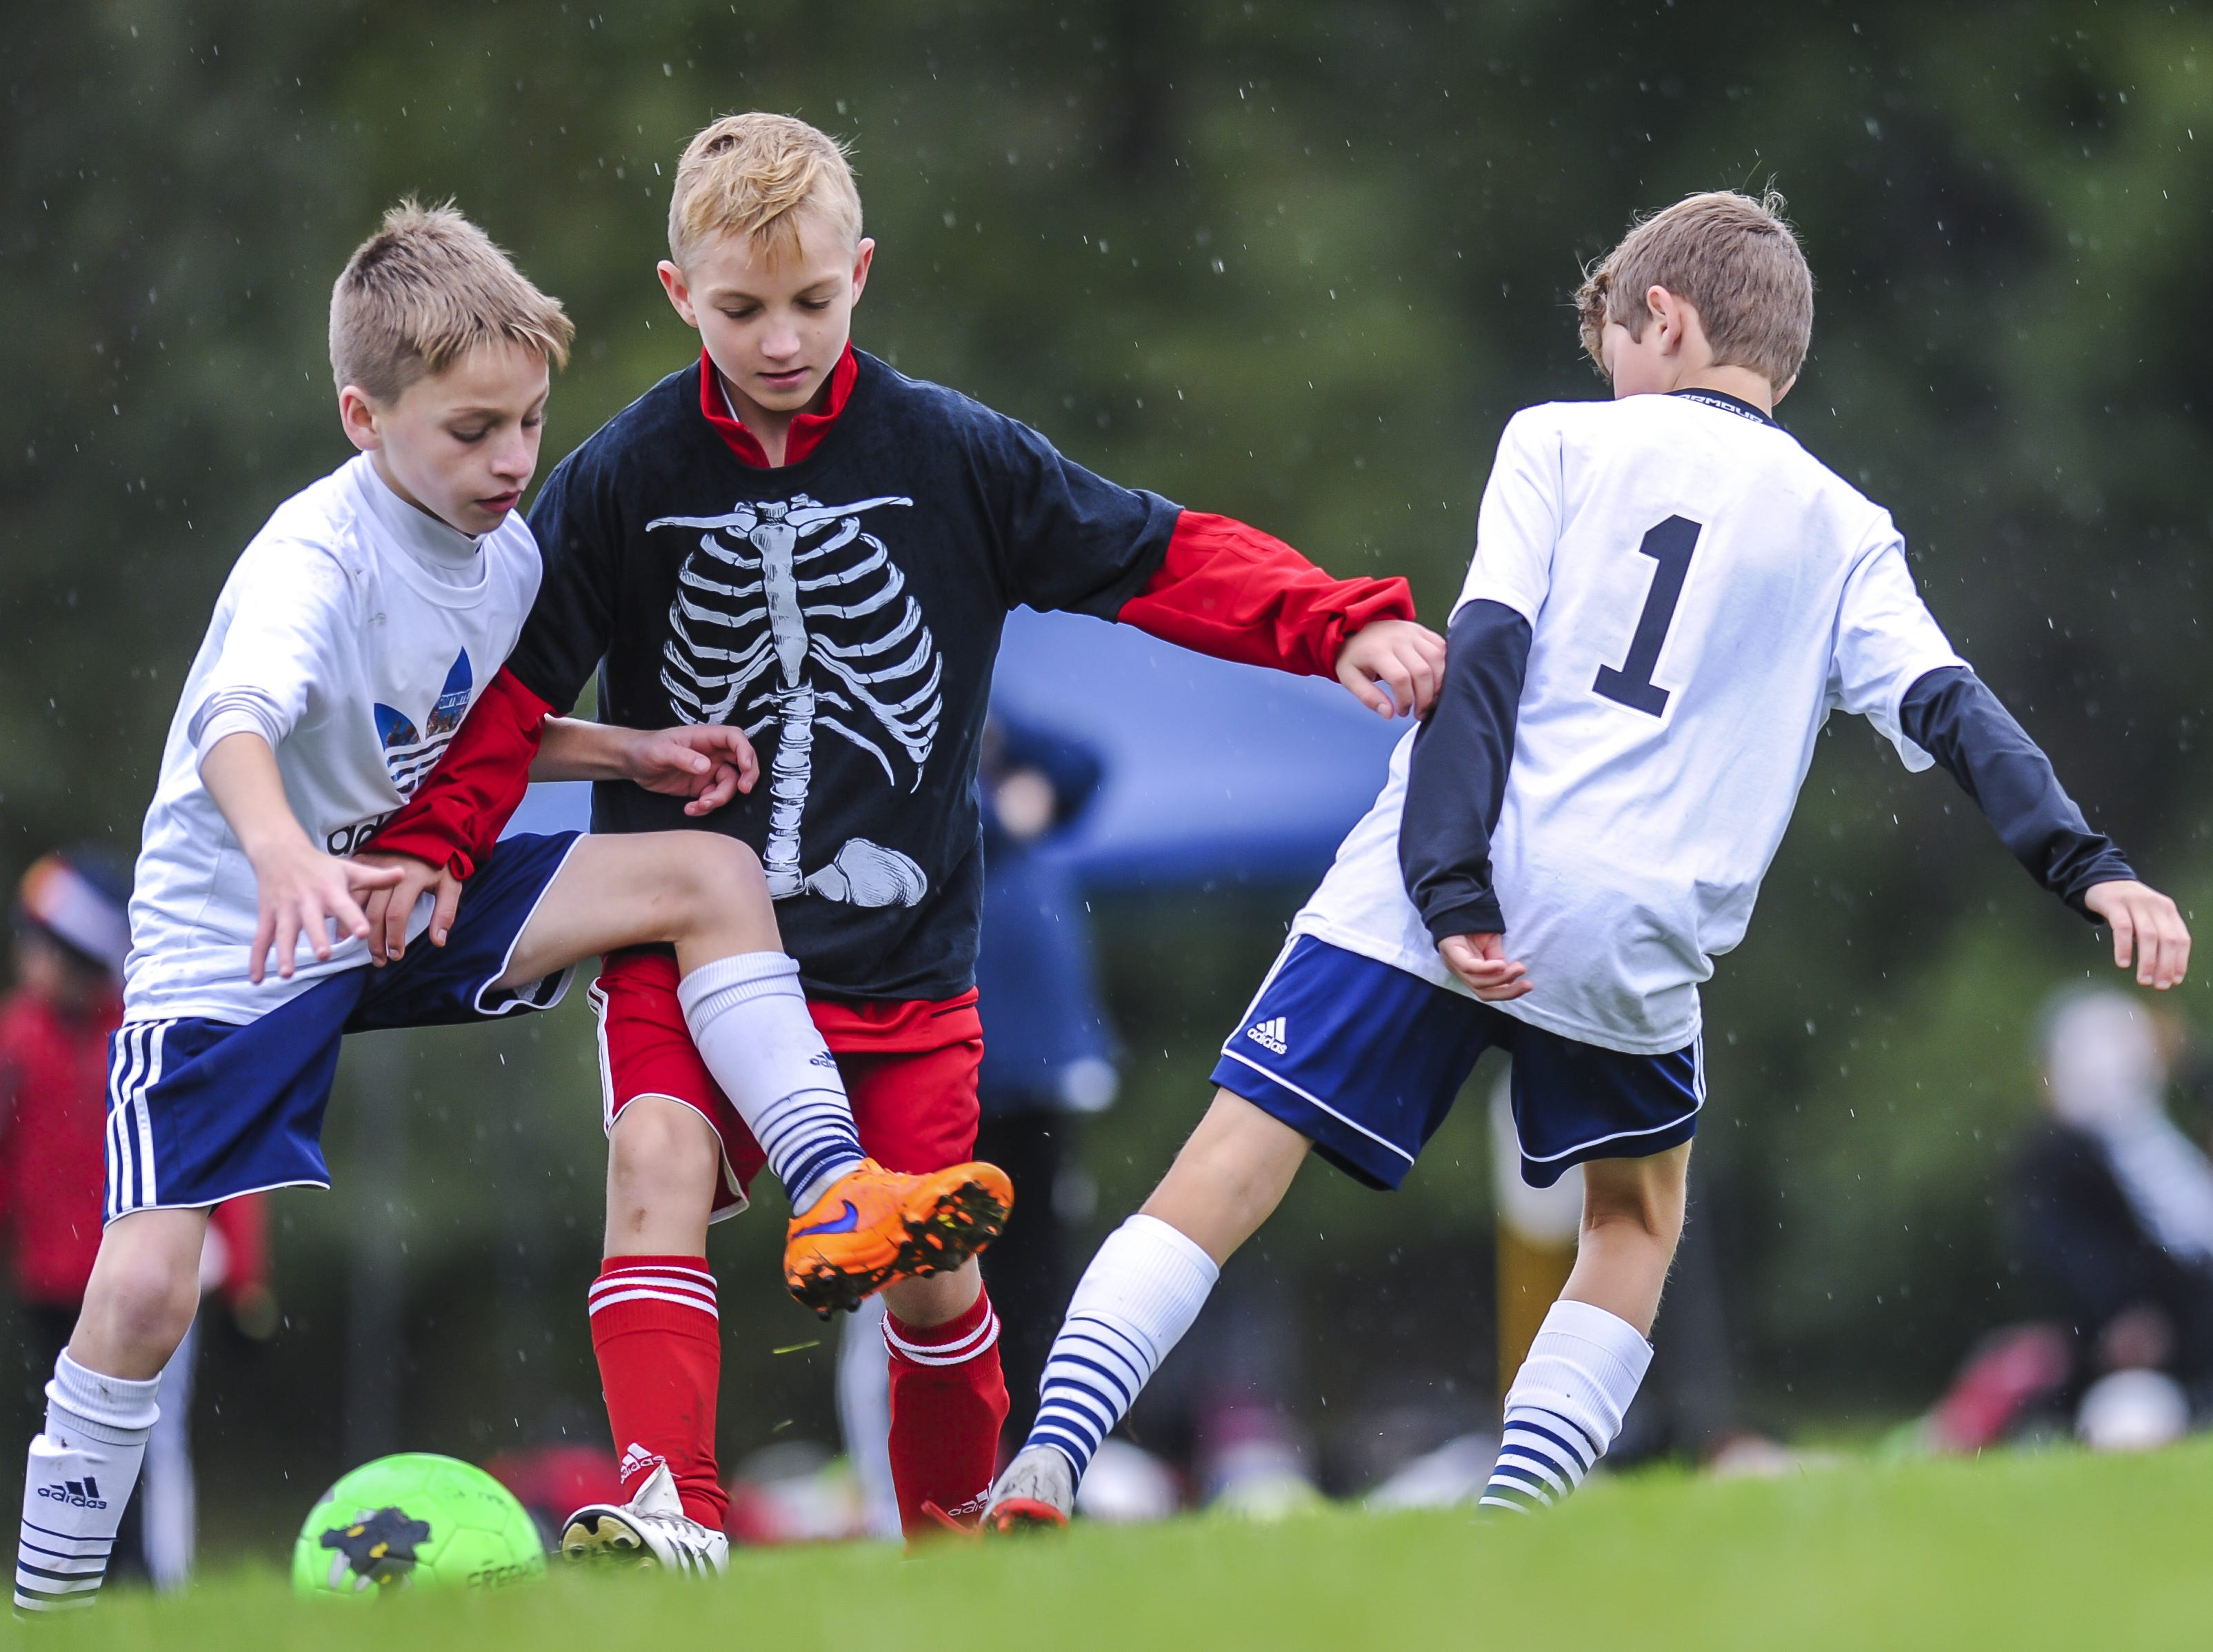 Nikita Jouk of Manalapan, gets caught between two Westfield defenders vieing for the ball at Michael J. Tighe Park in Freehold on Oct. 13, 2018. Freehold Soccer League hosted their 20th Halloween-themed Fright Fest Tournament where teams wear Halloween costumes as uniforms and the fields are decked out with spooky decorations.